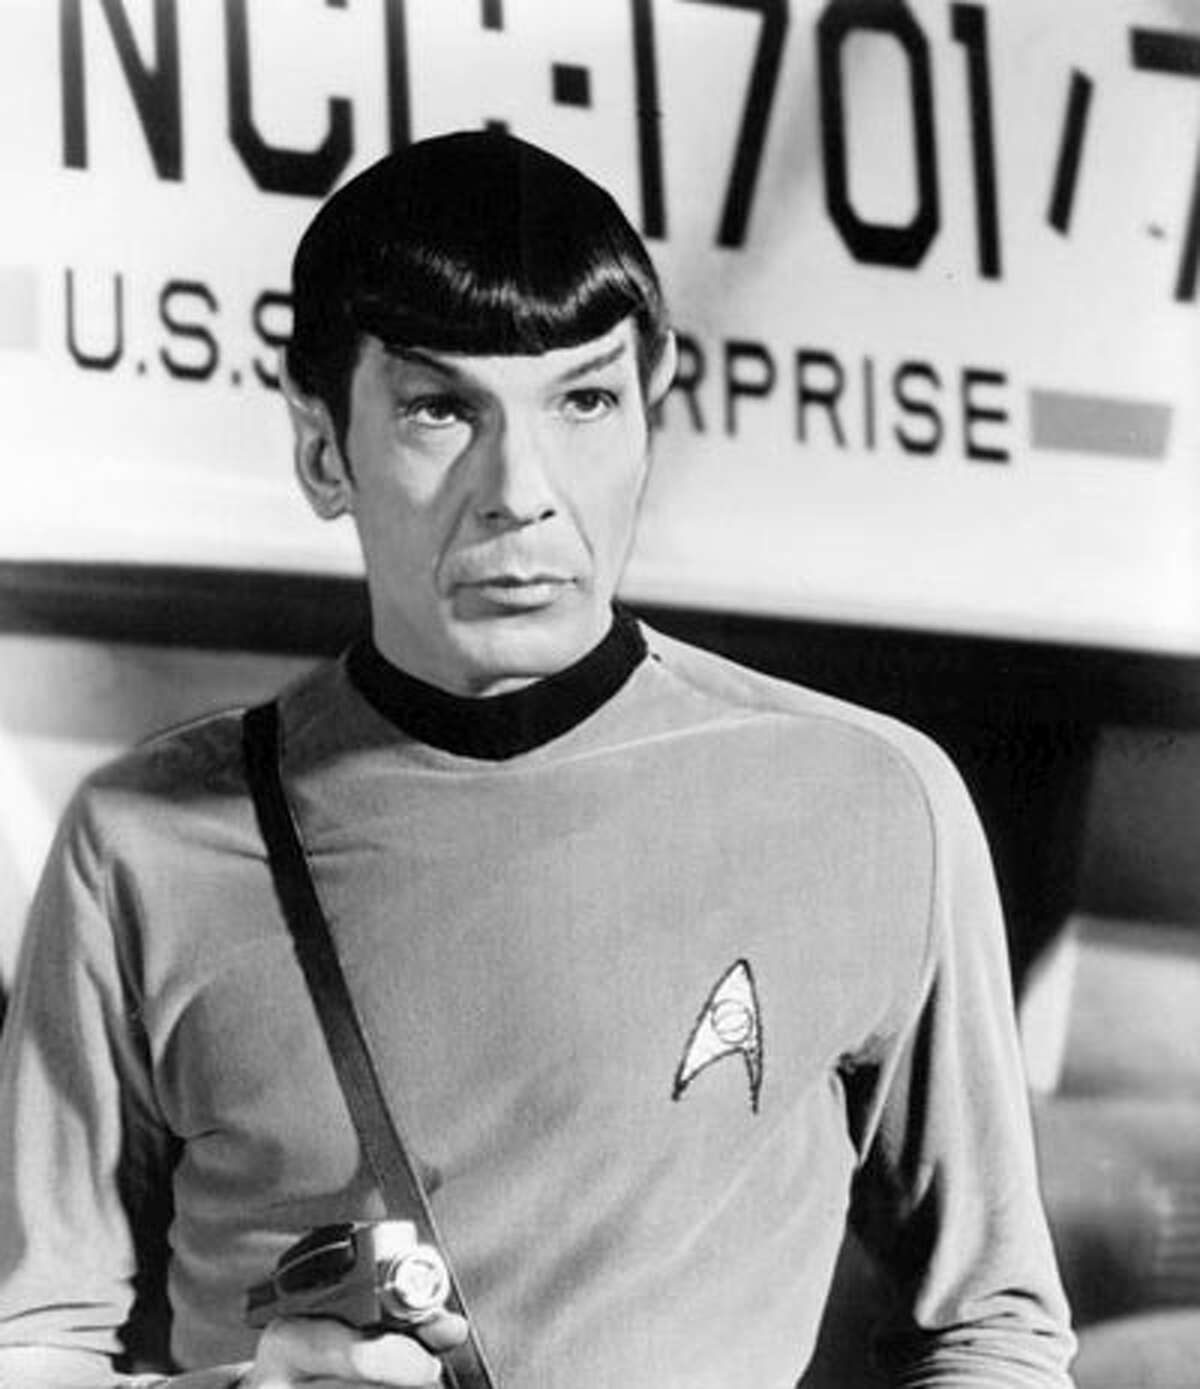 Leonard Nimoy - (U.S. Army 1953-55) Received an honorable discharge with the rank of Sergeant. www.military.com